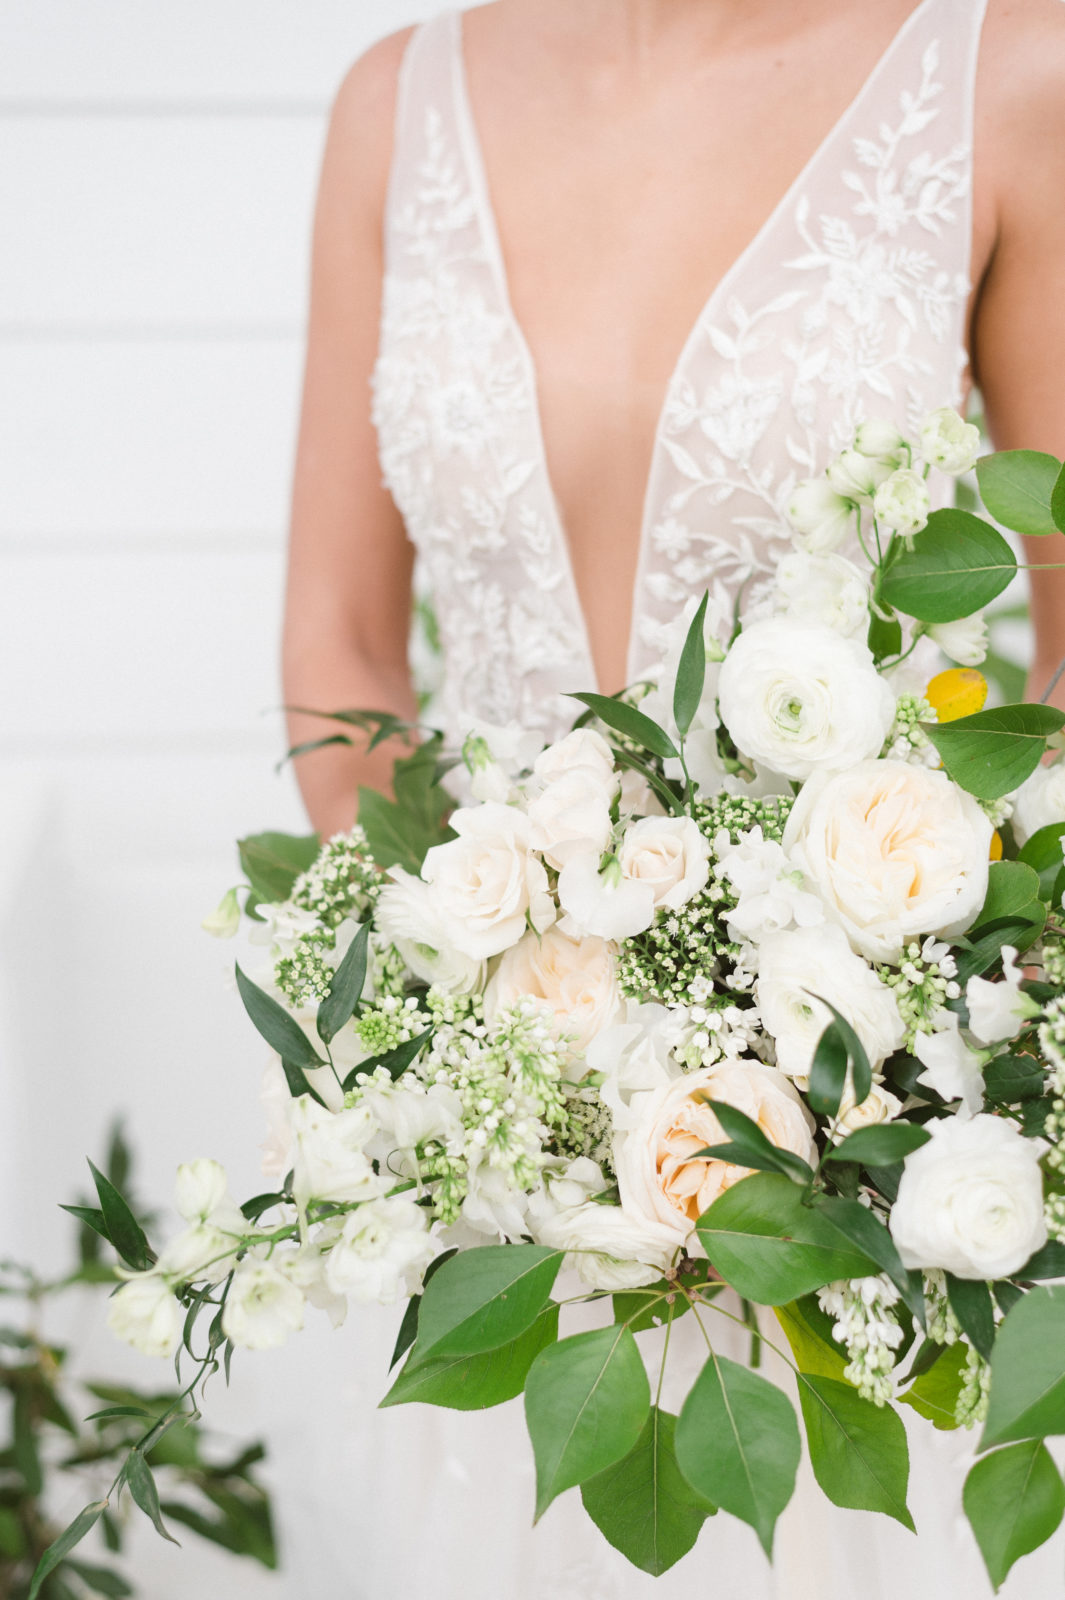 Alba Dahlia Floral White and Greenery Wedding Bouquet